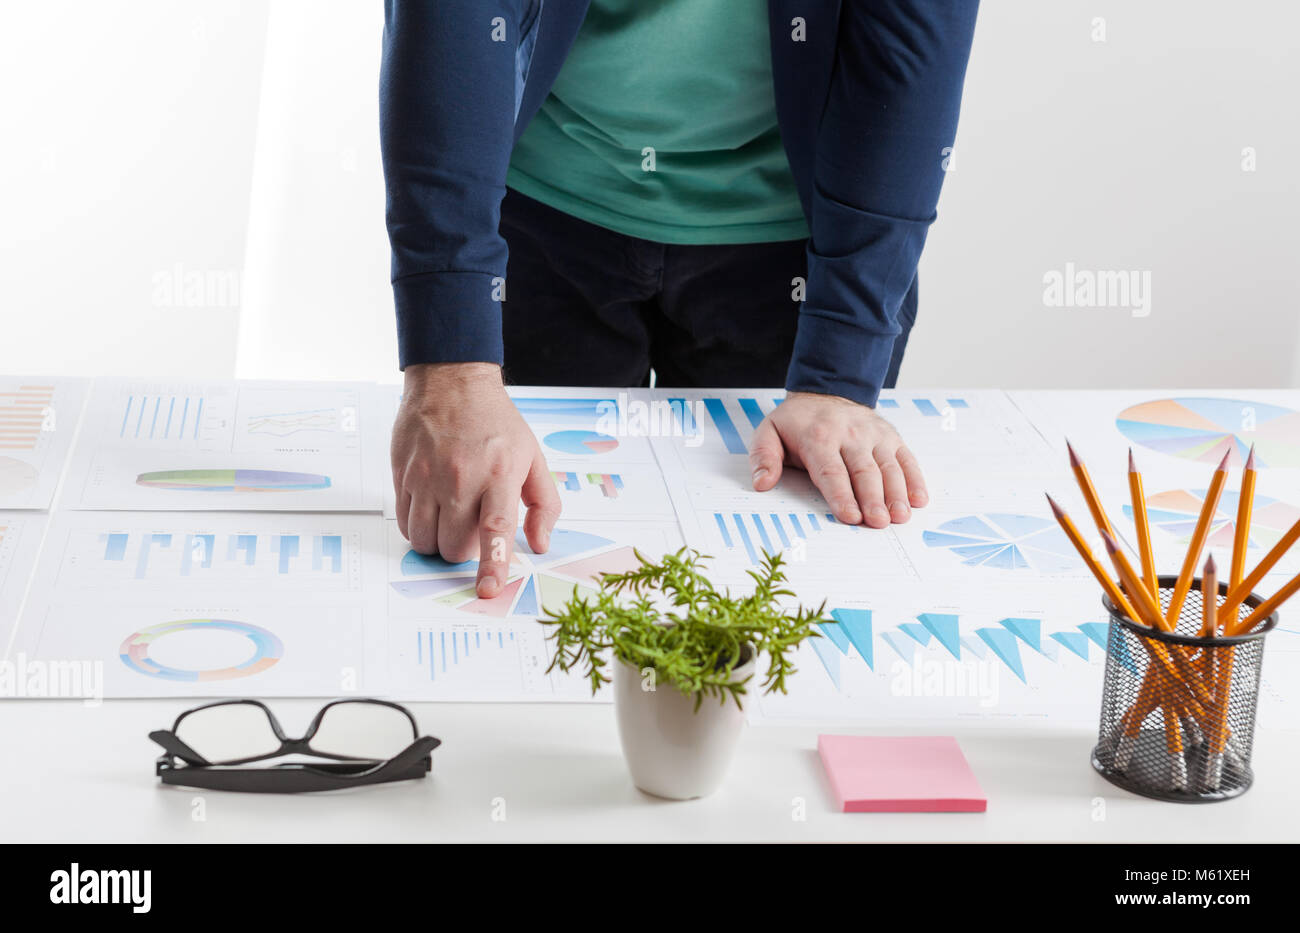 stock market chart and finger pointing on tablet in office - Stock Image